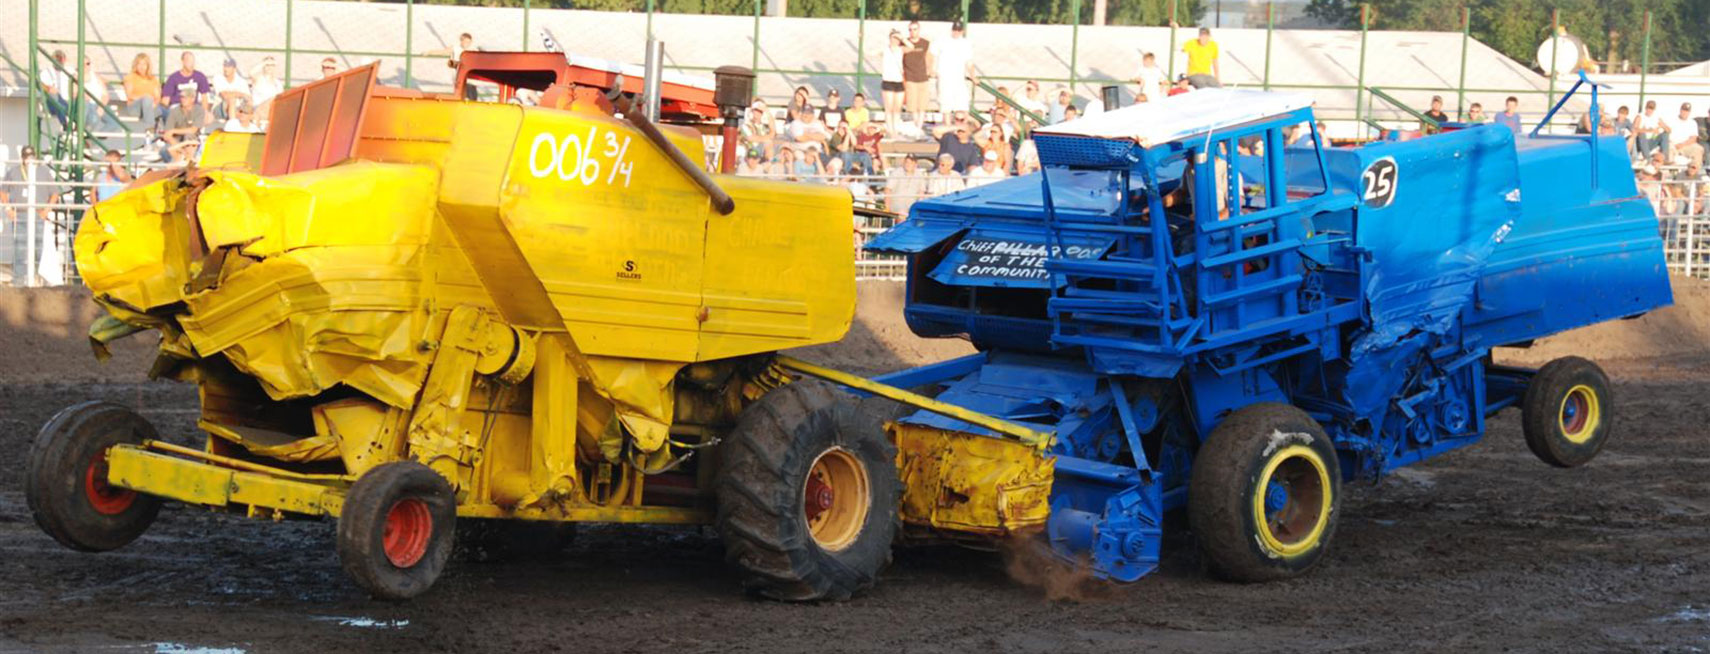 Combine Demo Derby in Abilene, Kansas